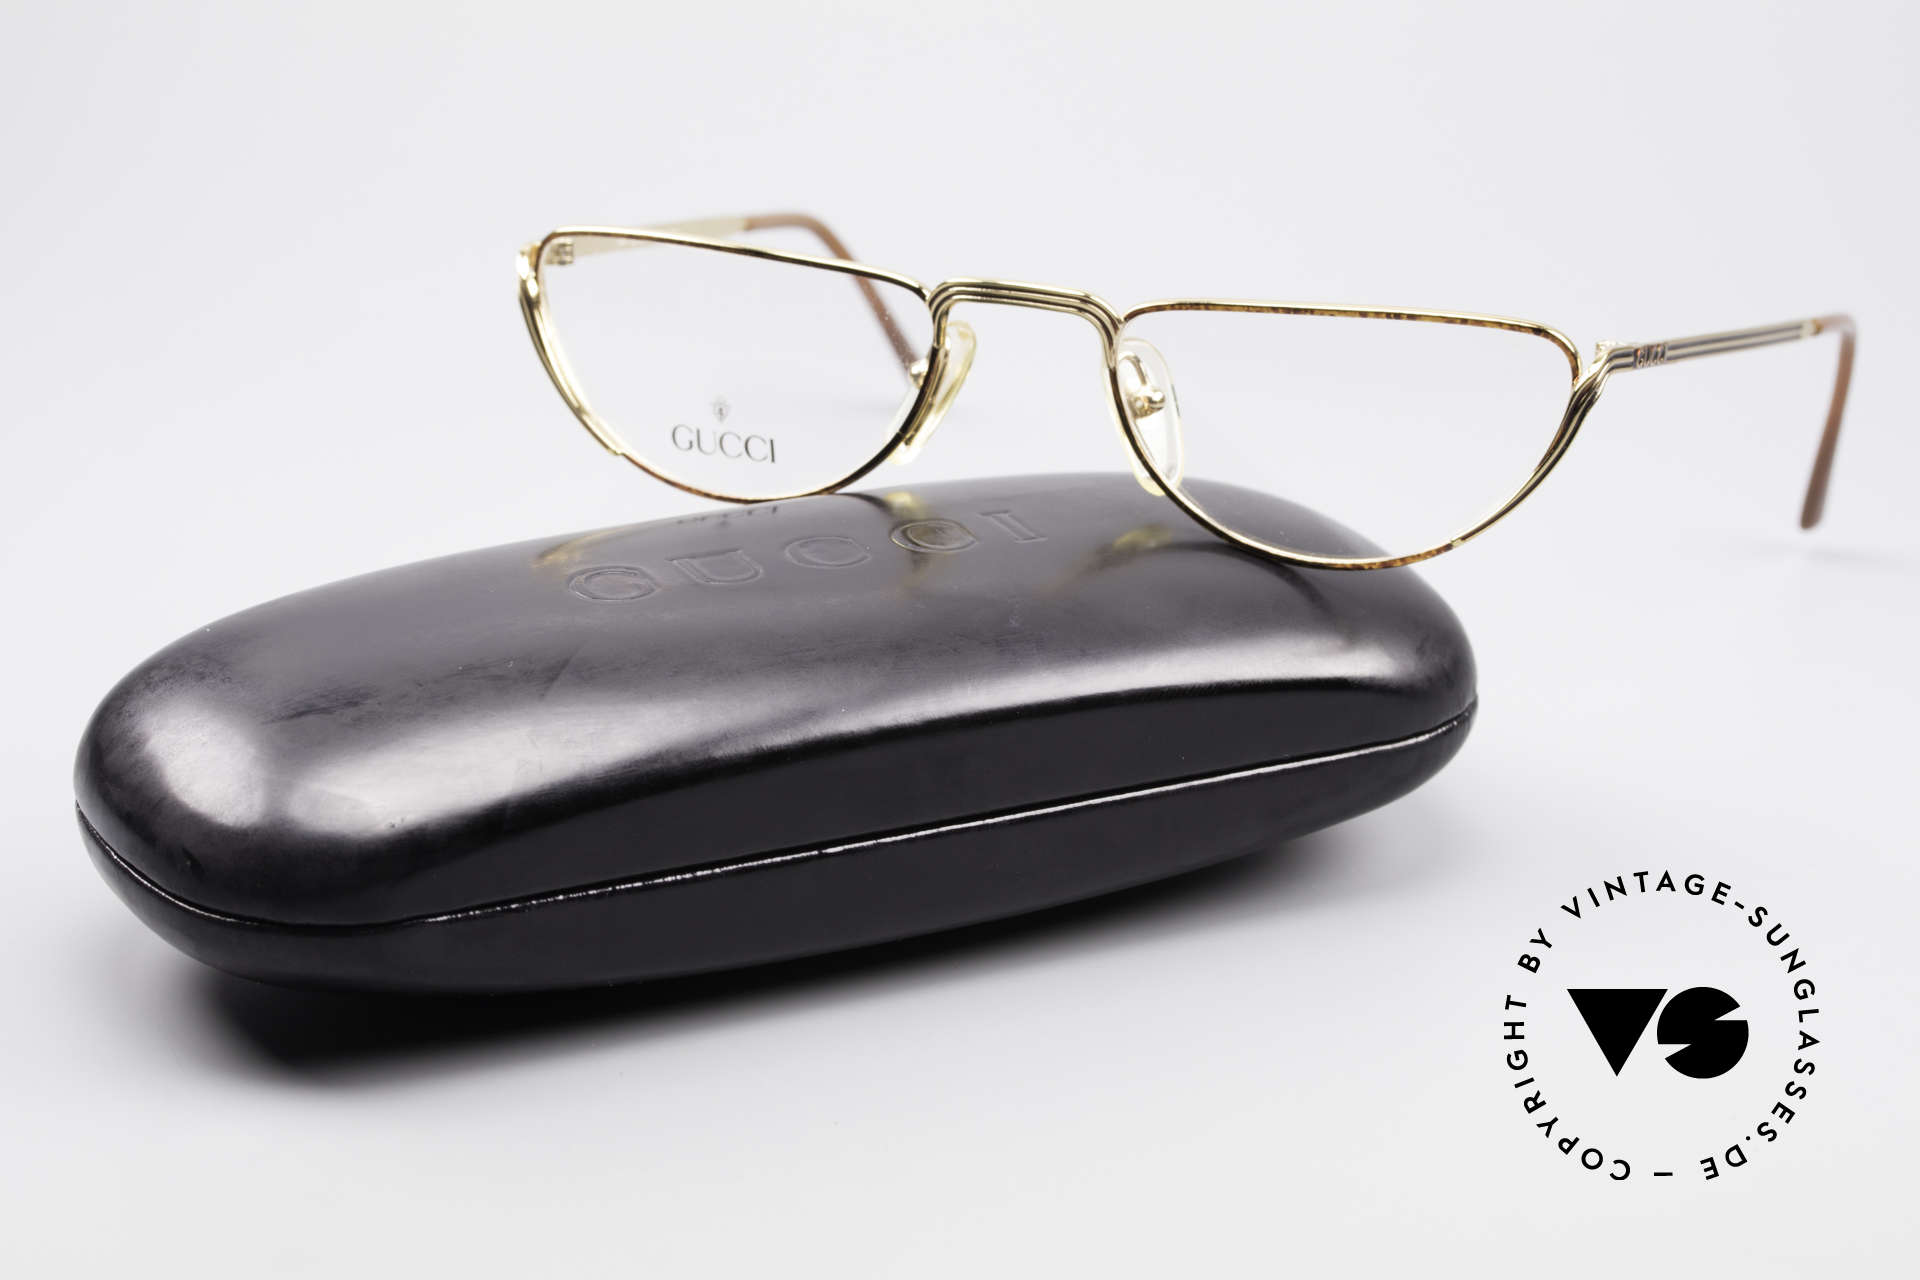 Gucci 2203 Vintage Reading Glasses 80's, NO retro eyewear, but an old vintage ORIGINAL, Made for Men and Women